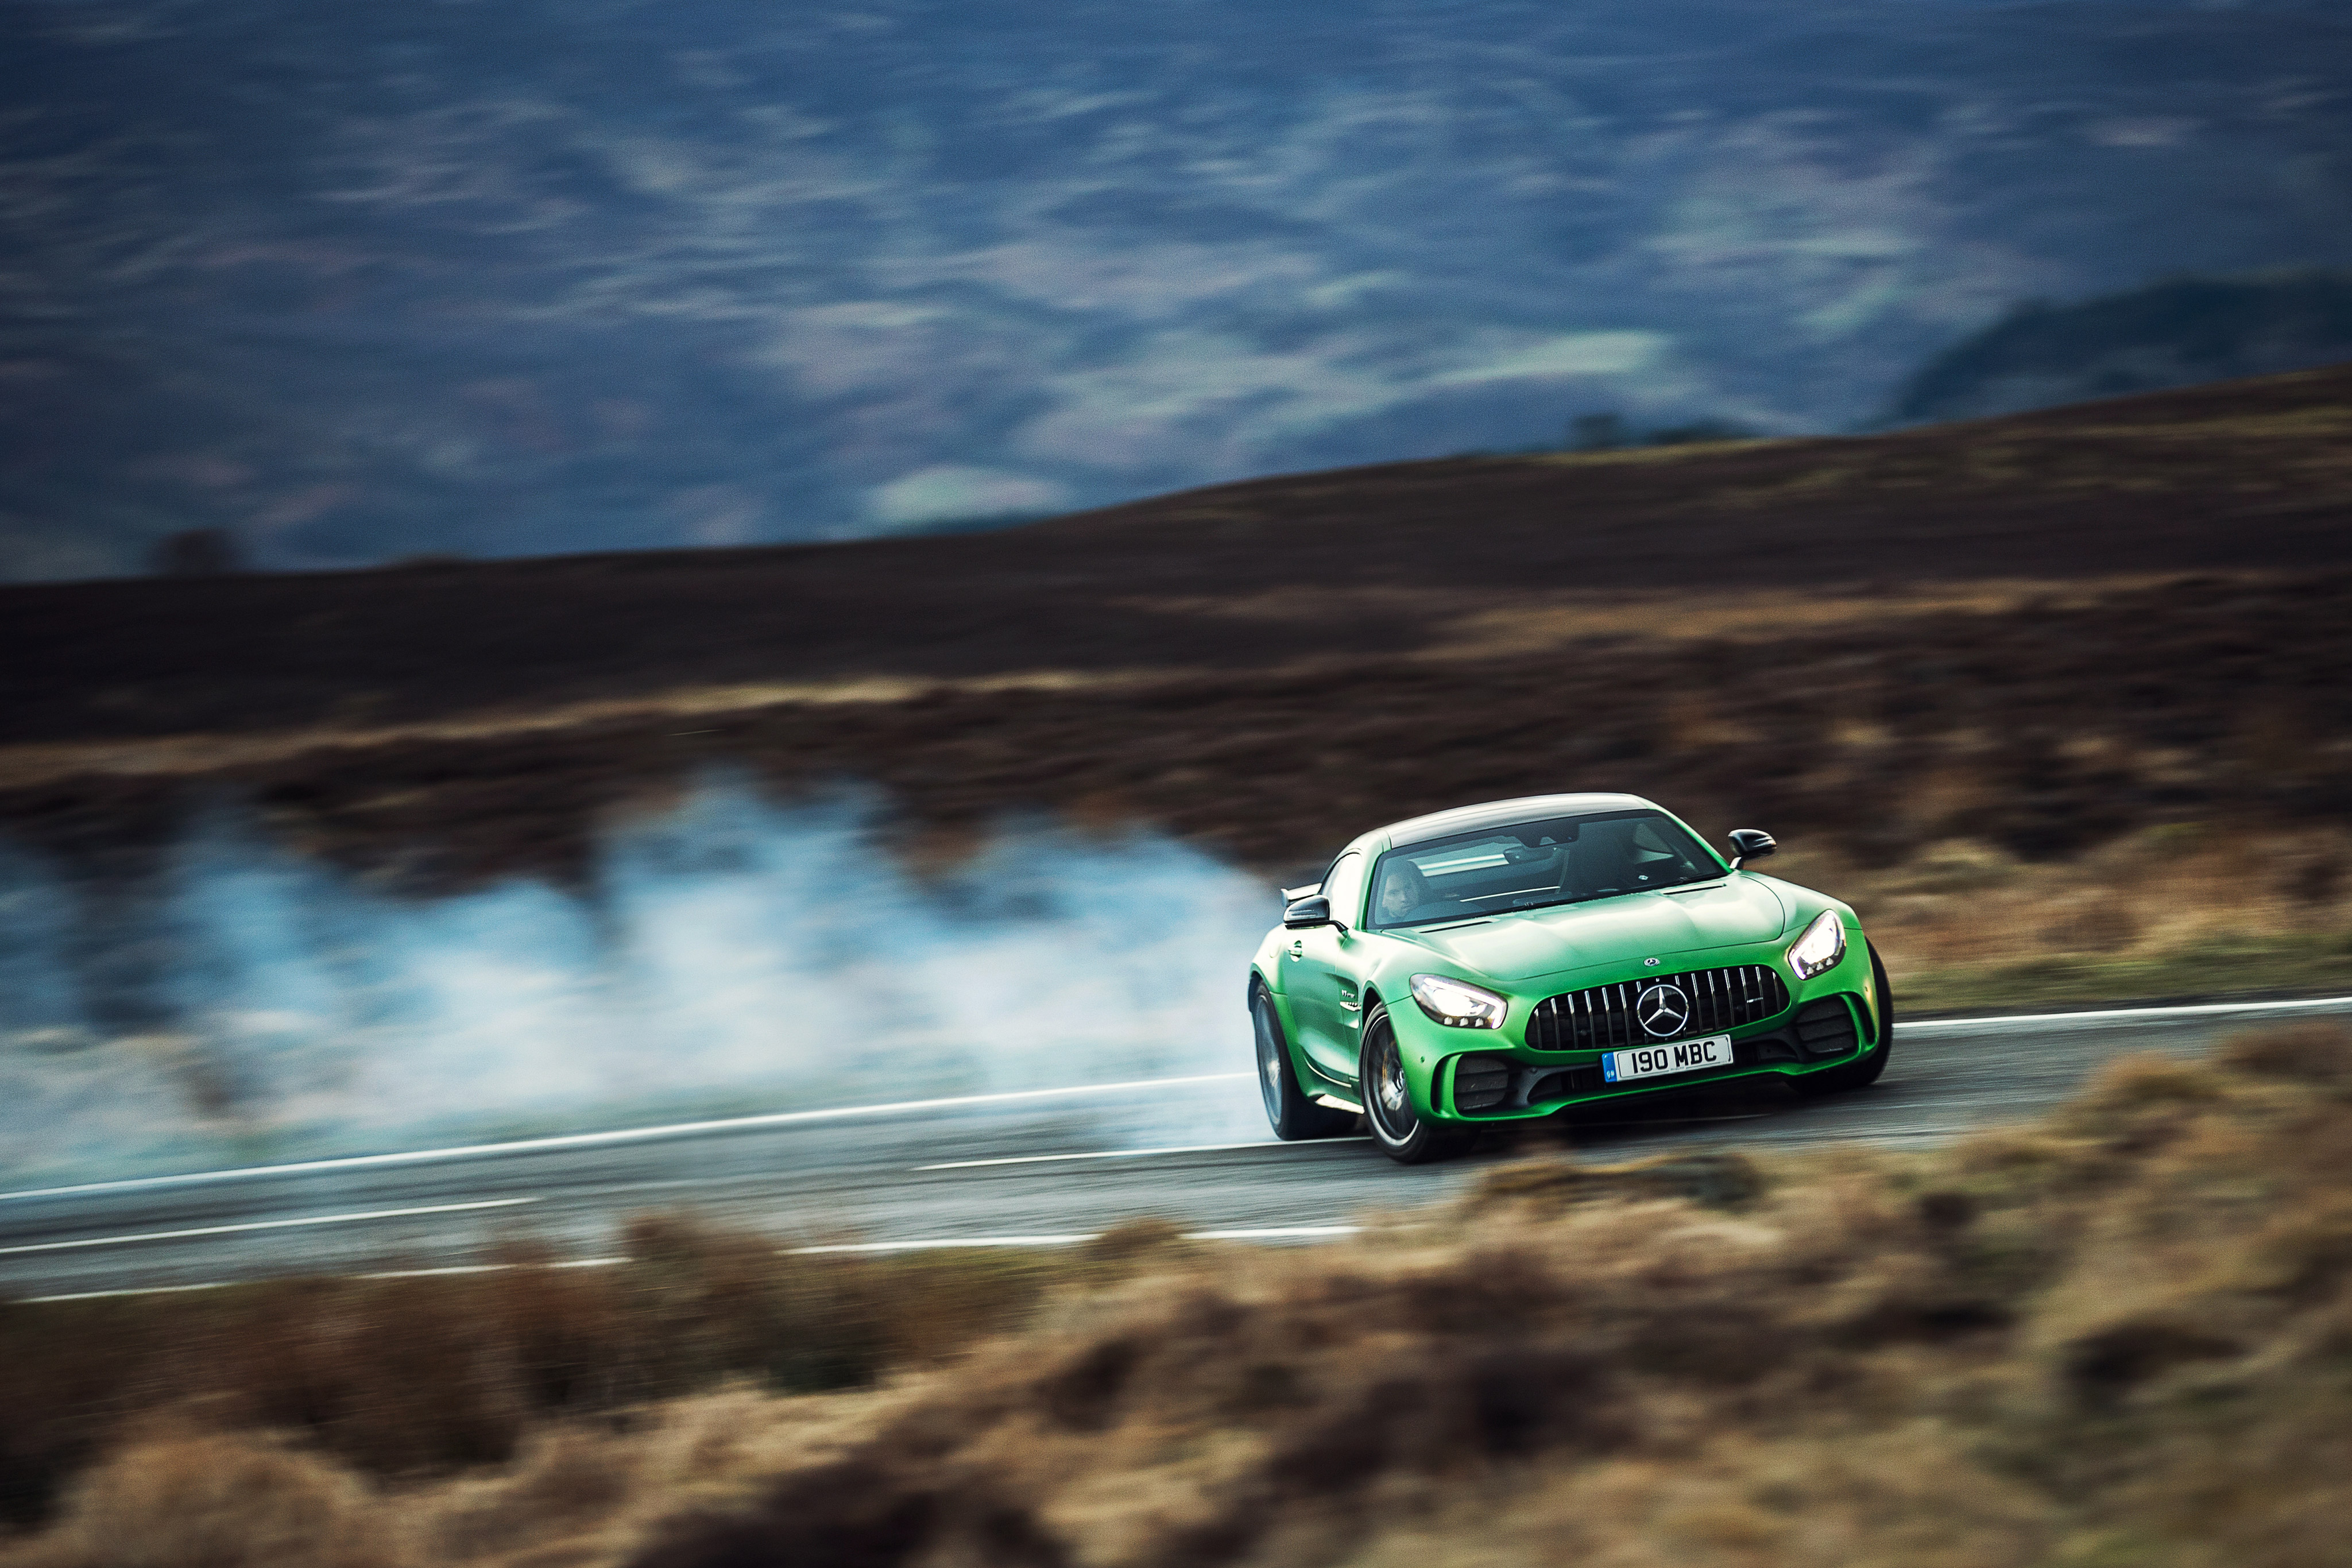 Mercedes AMG GT R 2017, HD Cars, 4k Wallpapers, Images ...